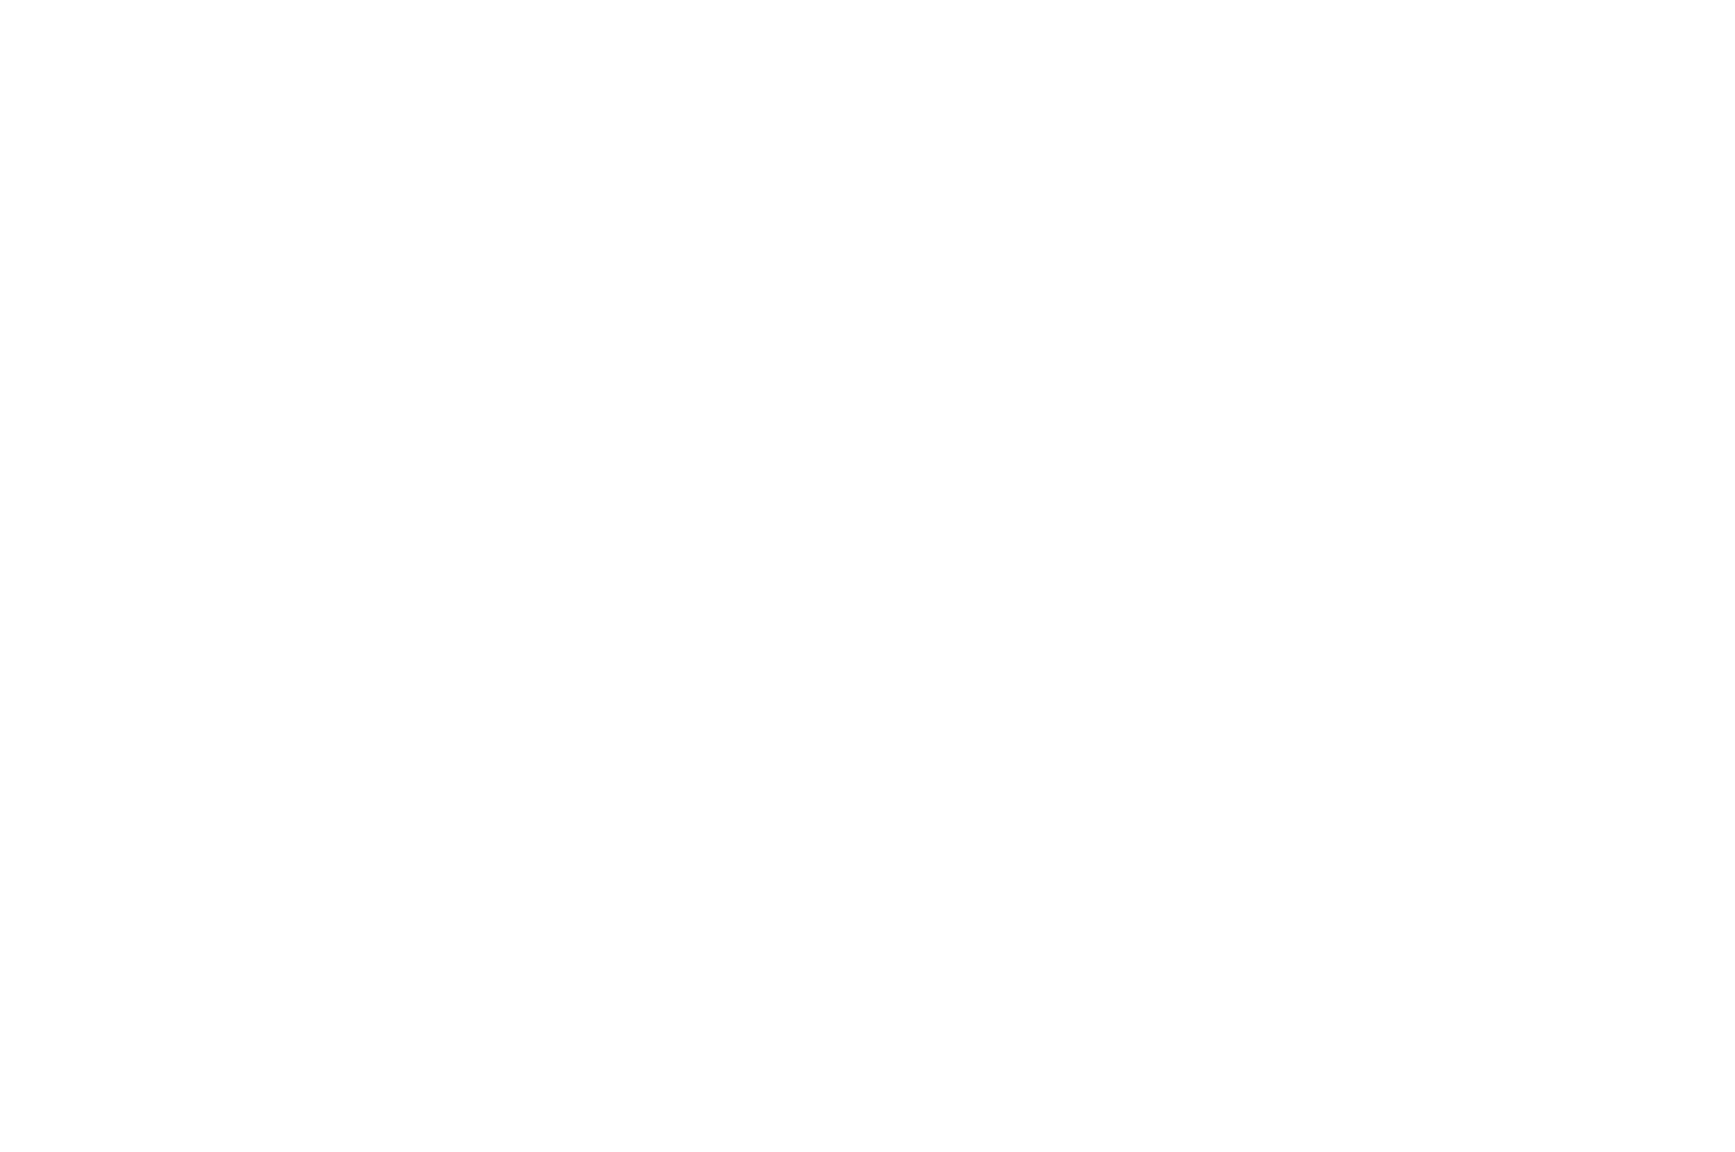 BEST DIRECTOR - Great Lakes Christian Film Festival GLCFF - 2017.png